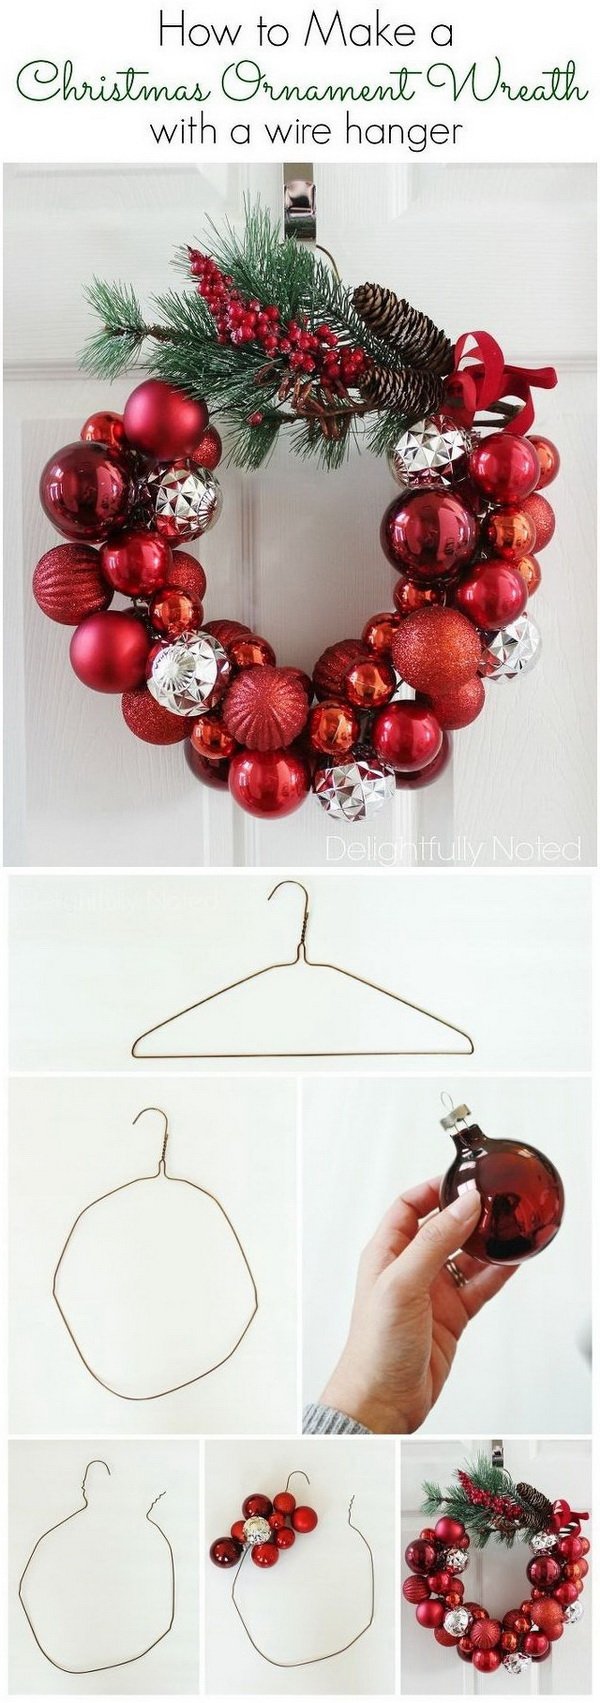 diy christmas ornament wreath - Diy Christmas Decorations Ideas